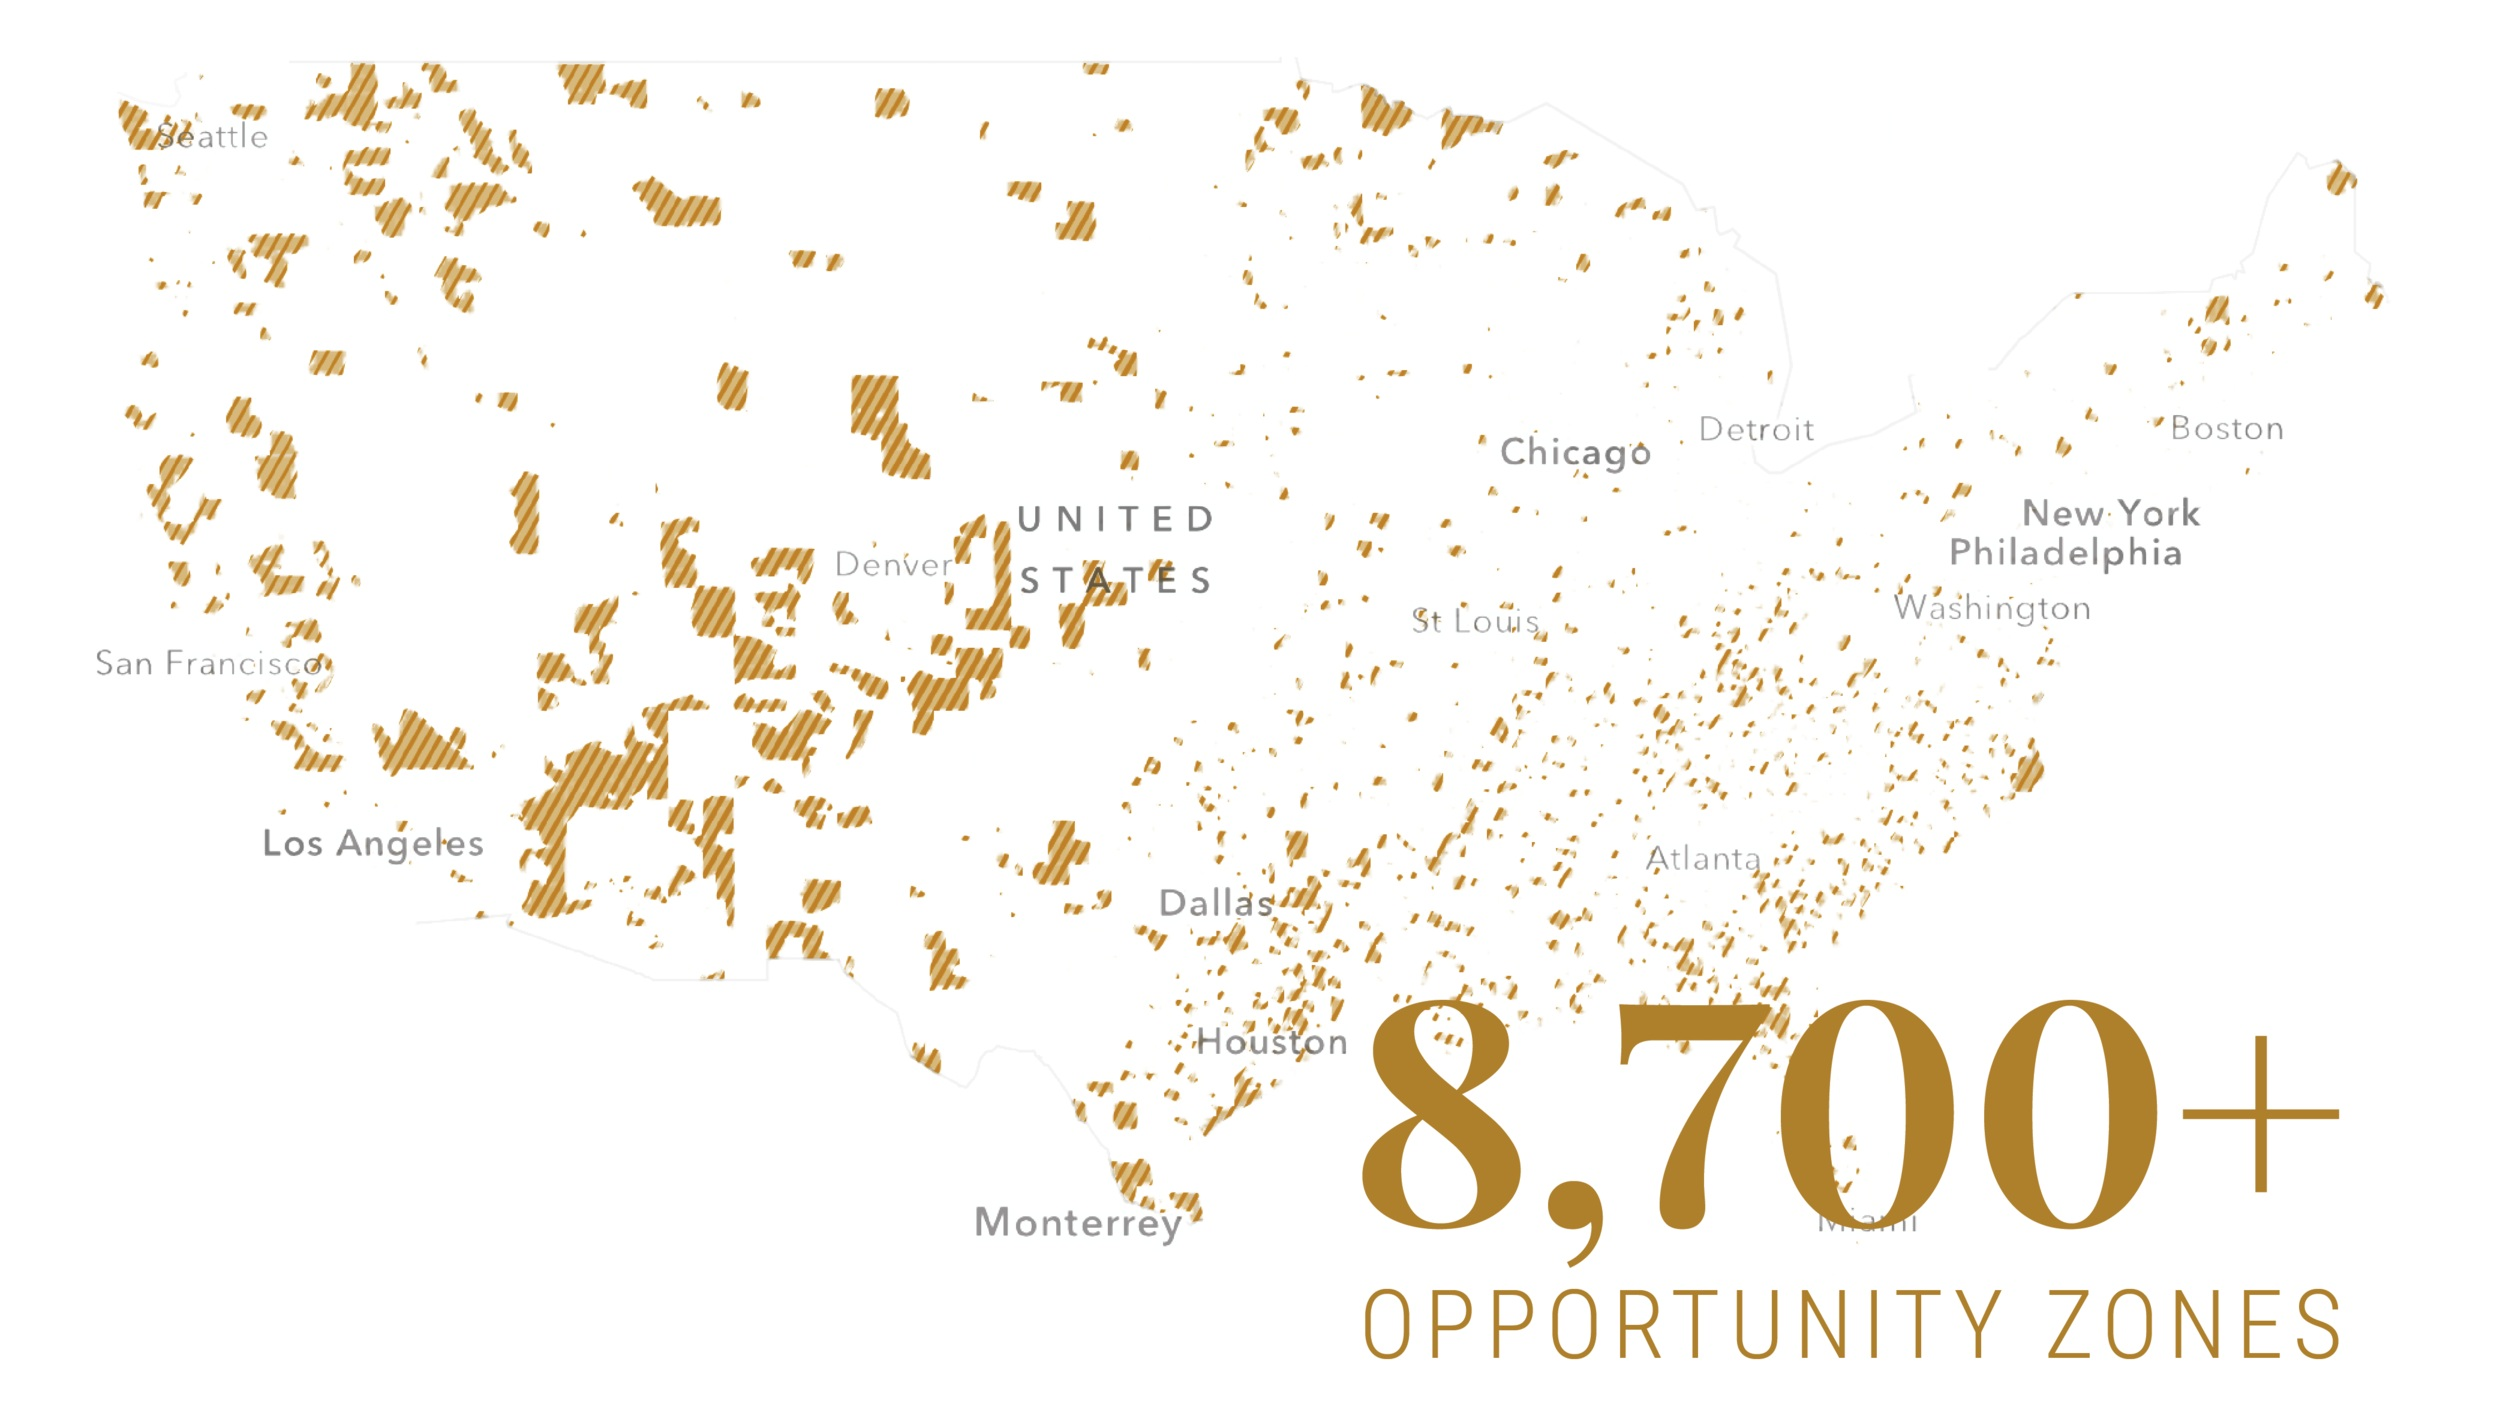 opportunity-zones-locations-map.jpg